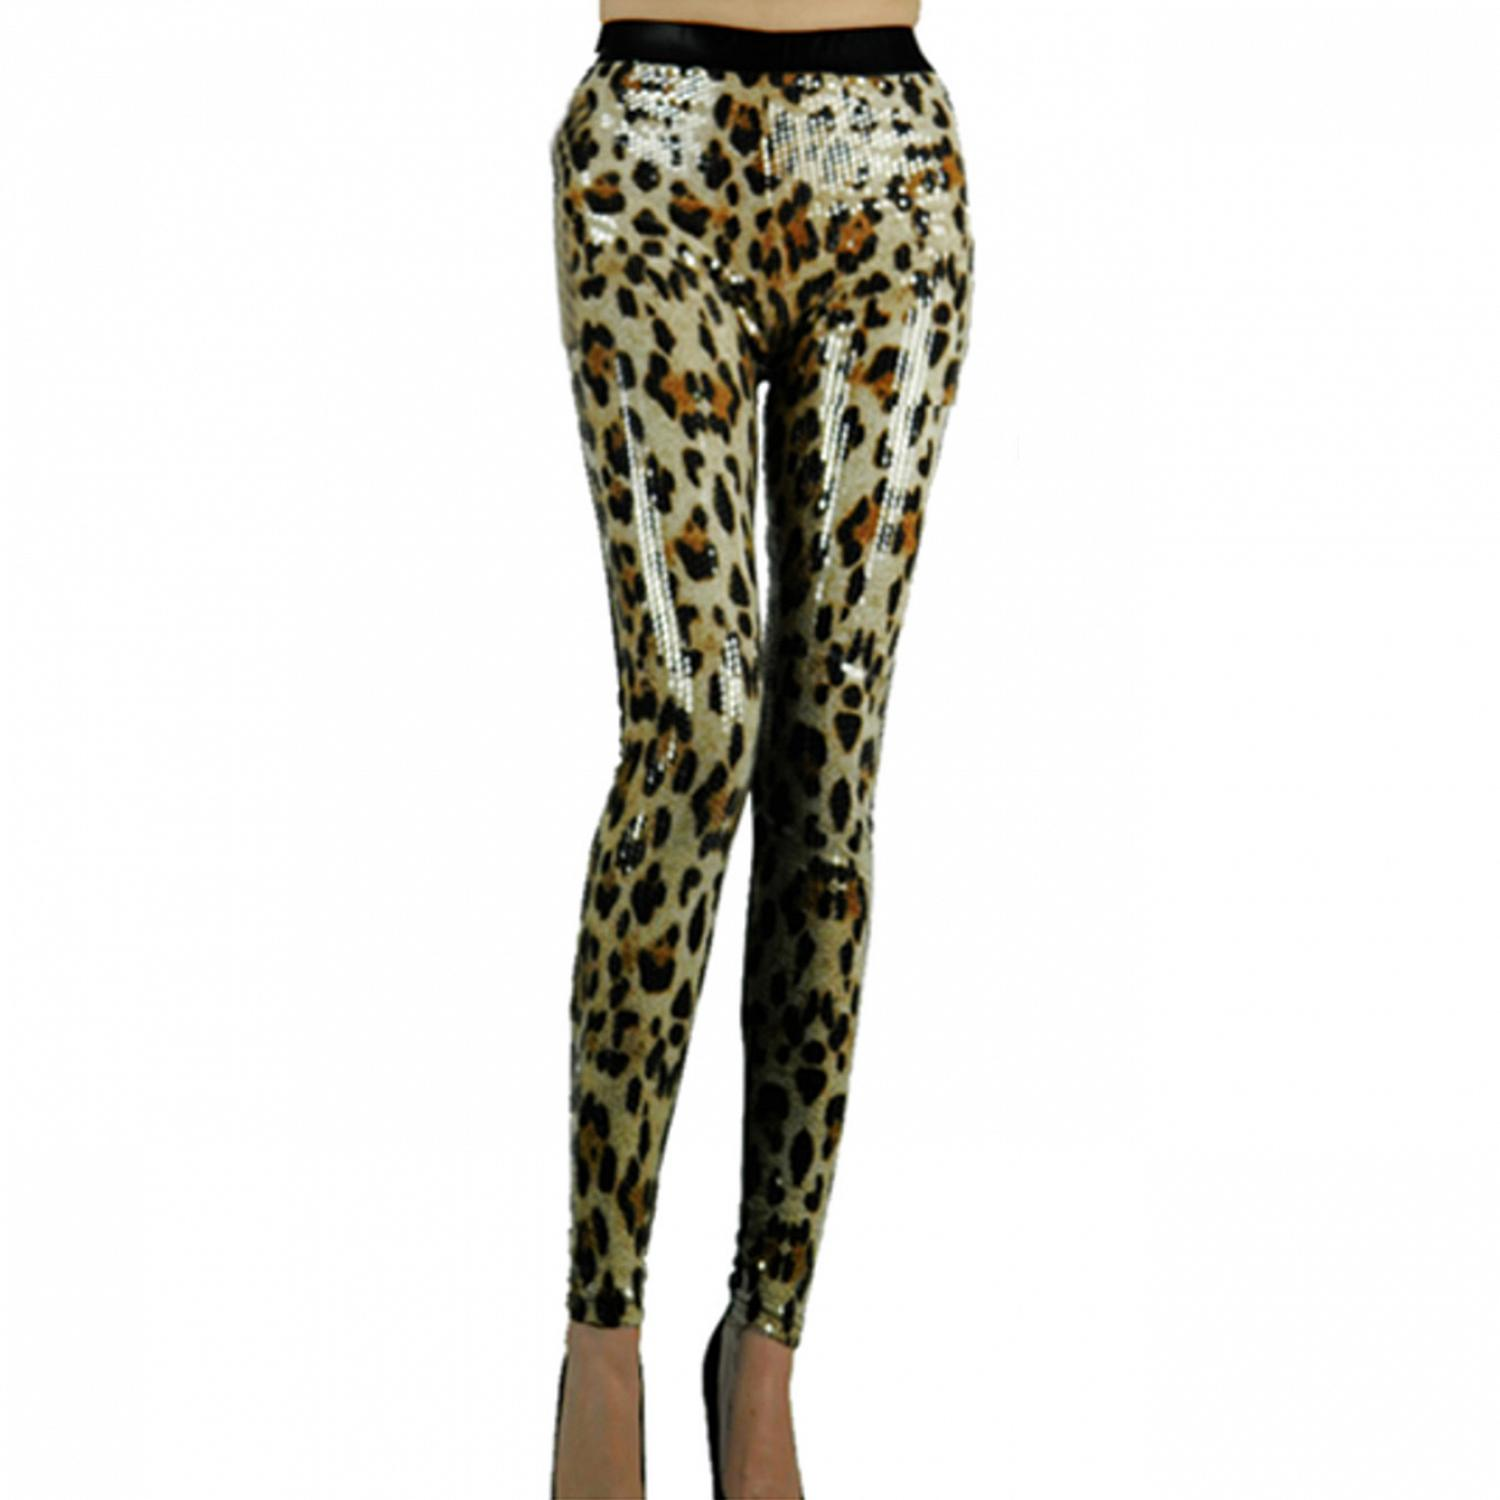 Wetlook Glanz Strech leopard Leggings mit Pailletten 1